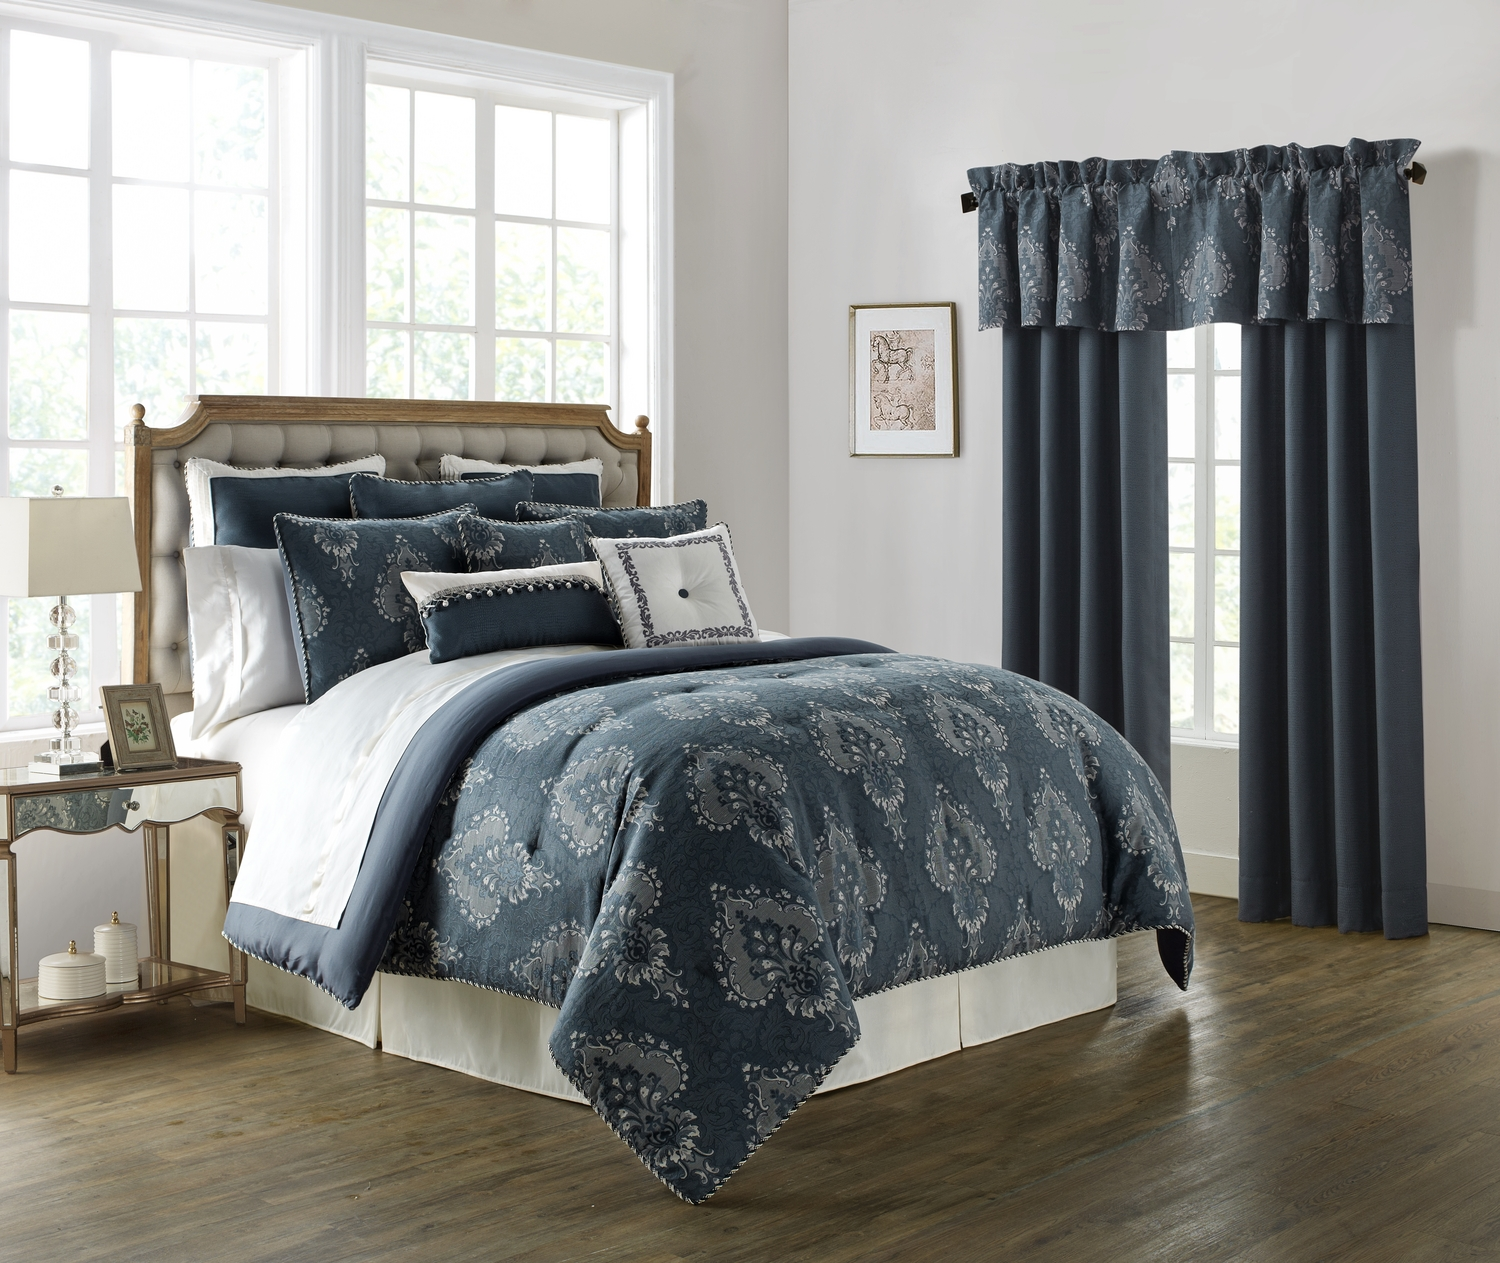 Desirie Lake By Waterford Luxury Bedding